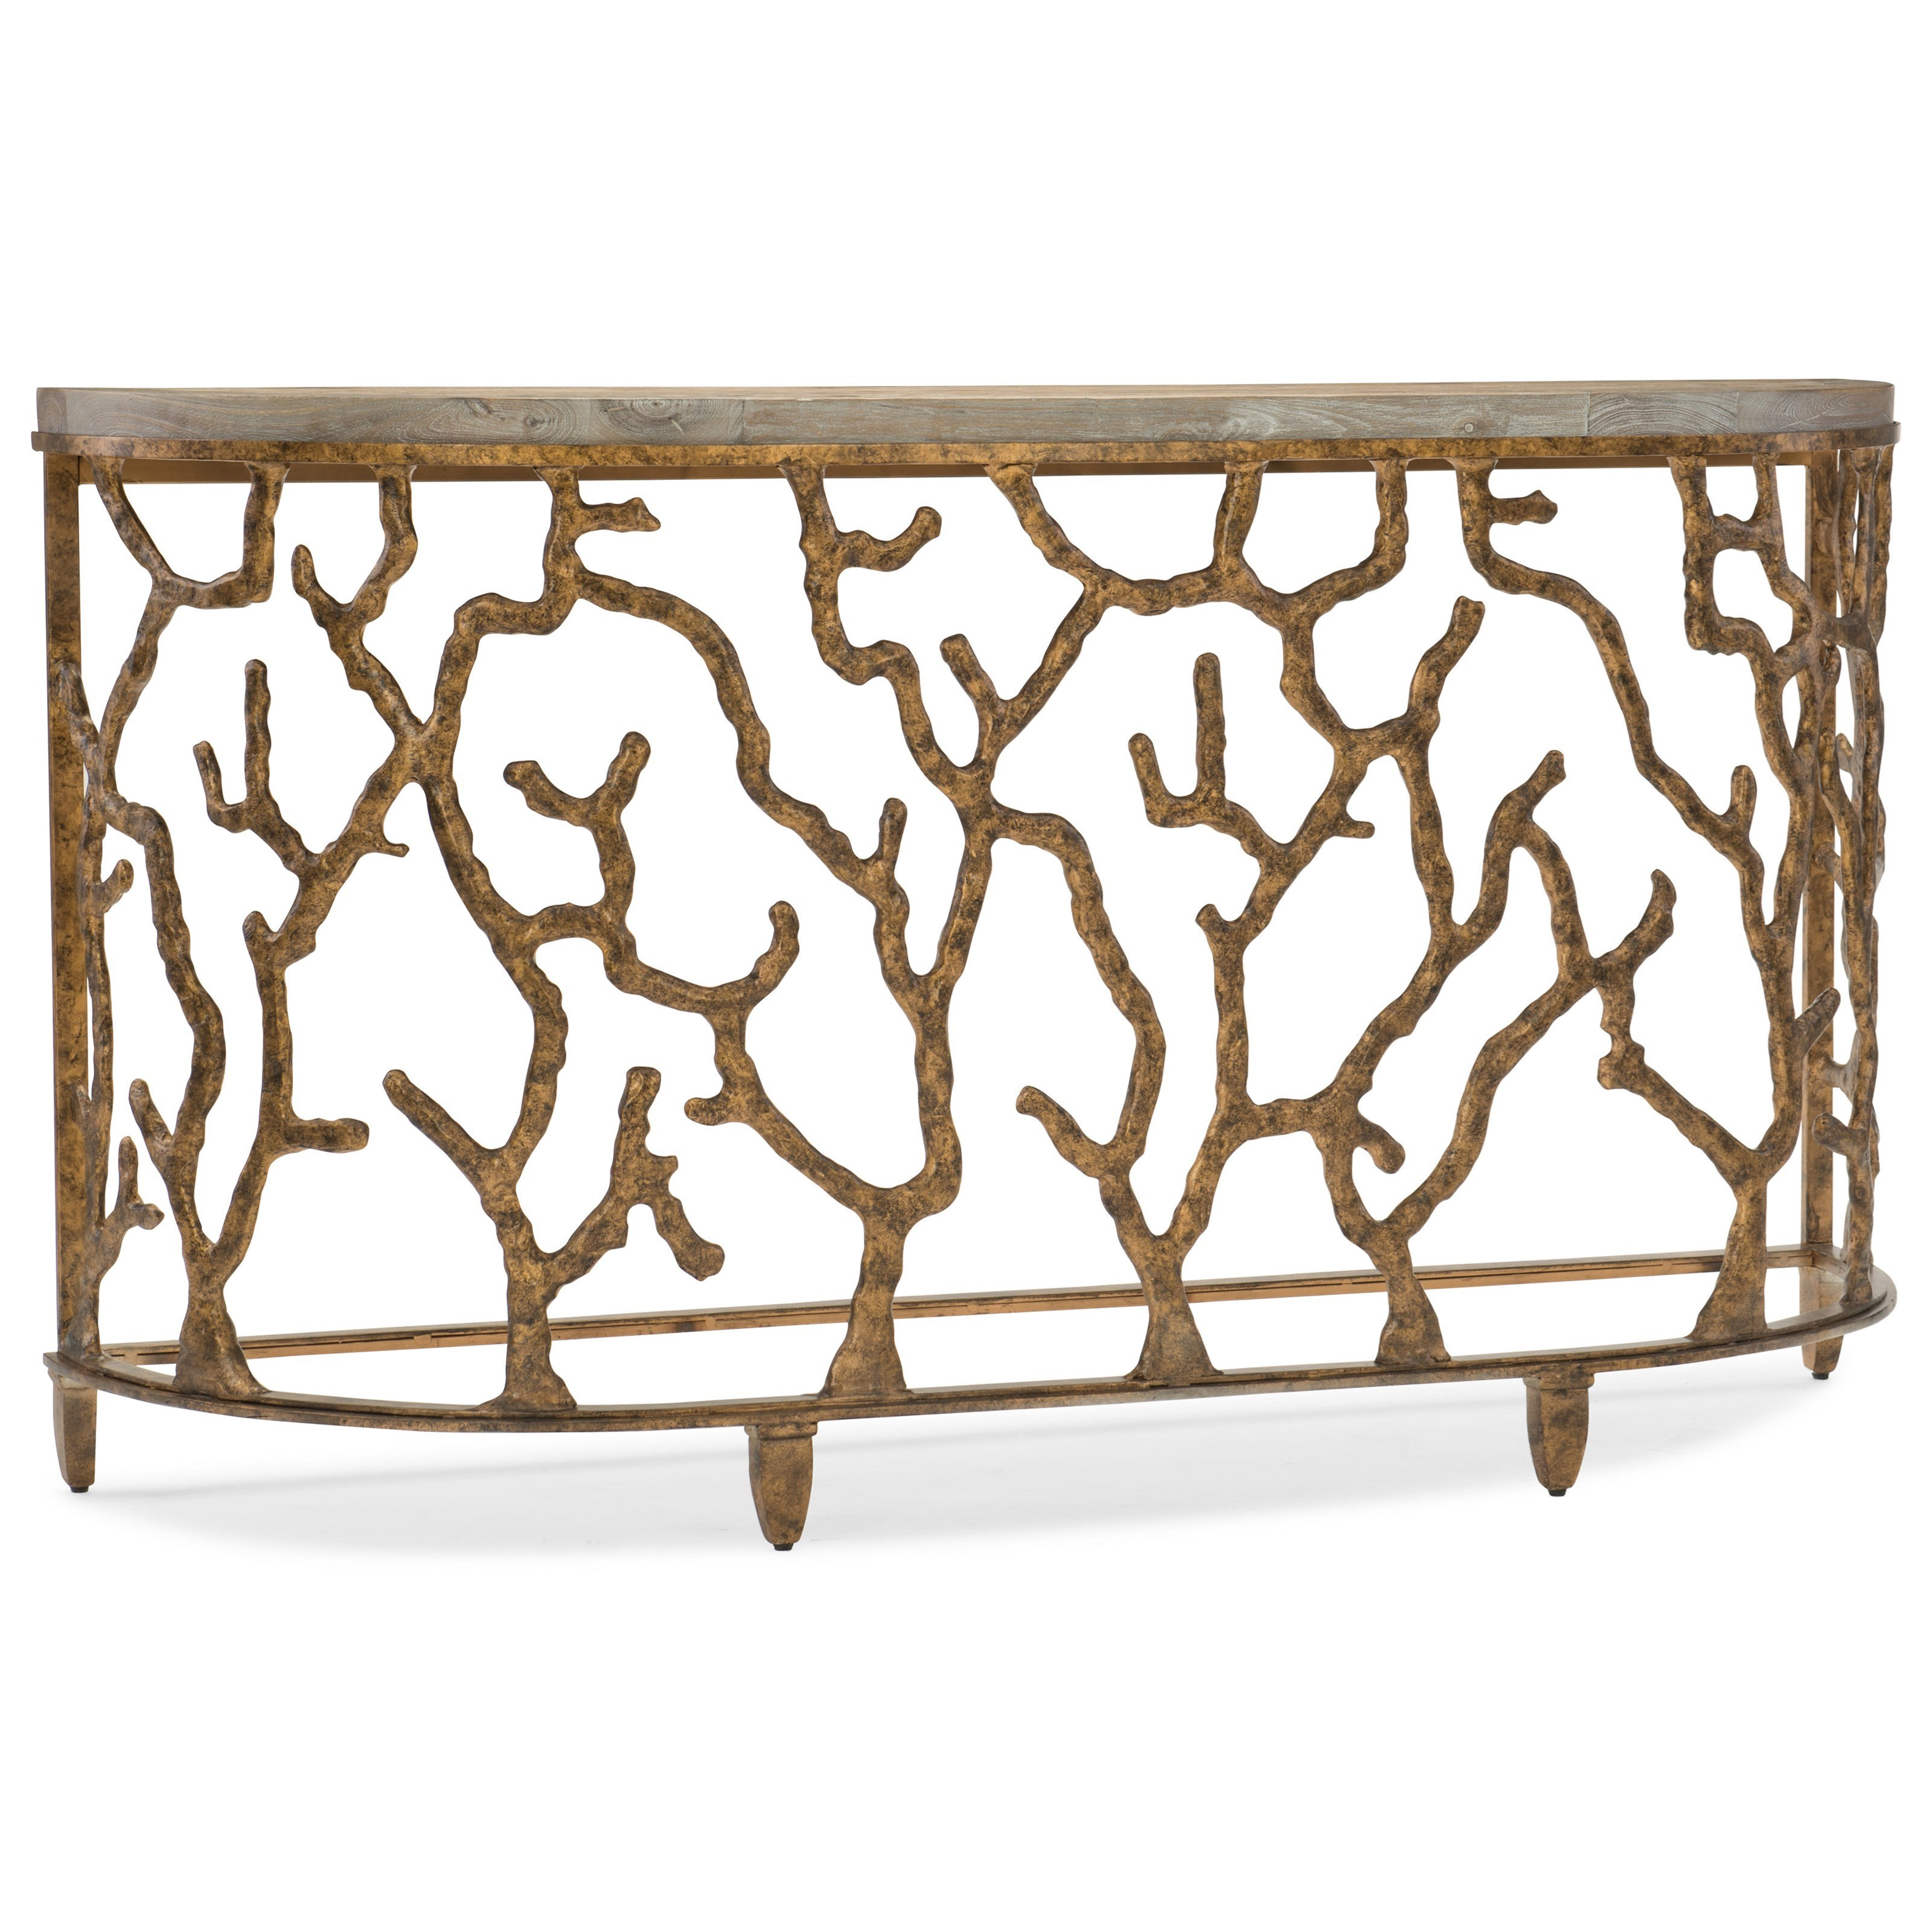 Living Room Accents Coral Console by Hooker Furniture at Alison Craig Home Furnishings